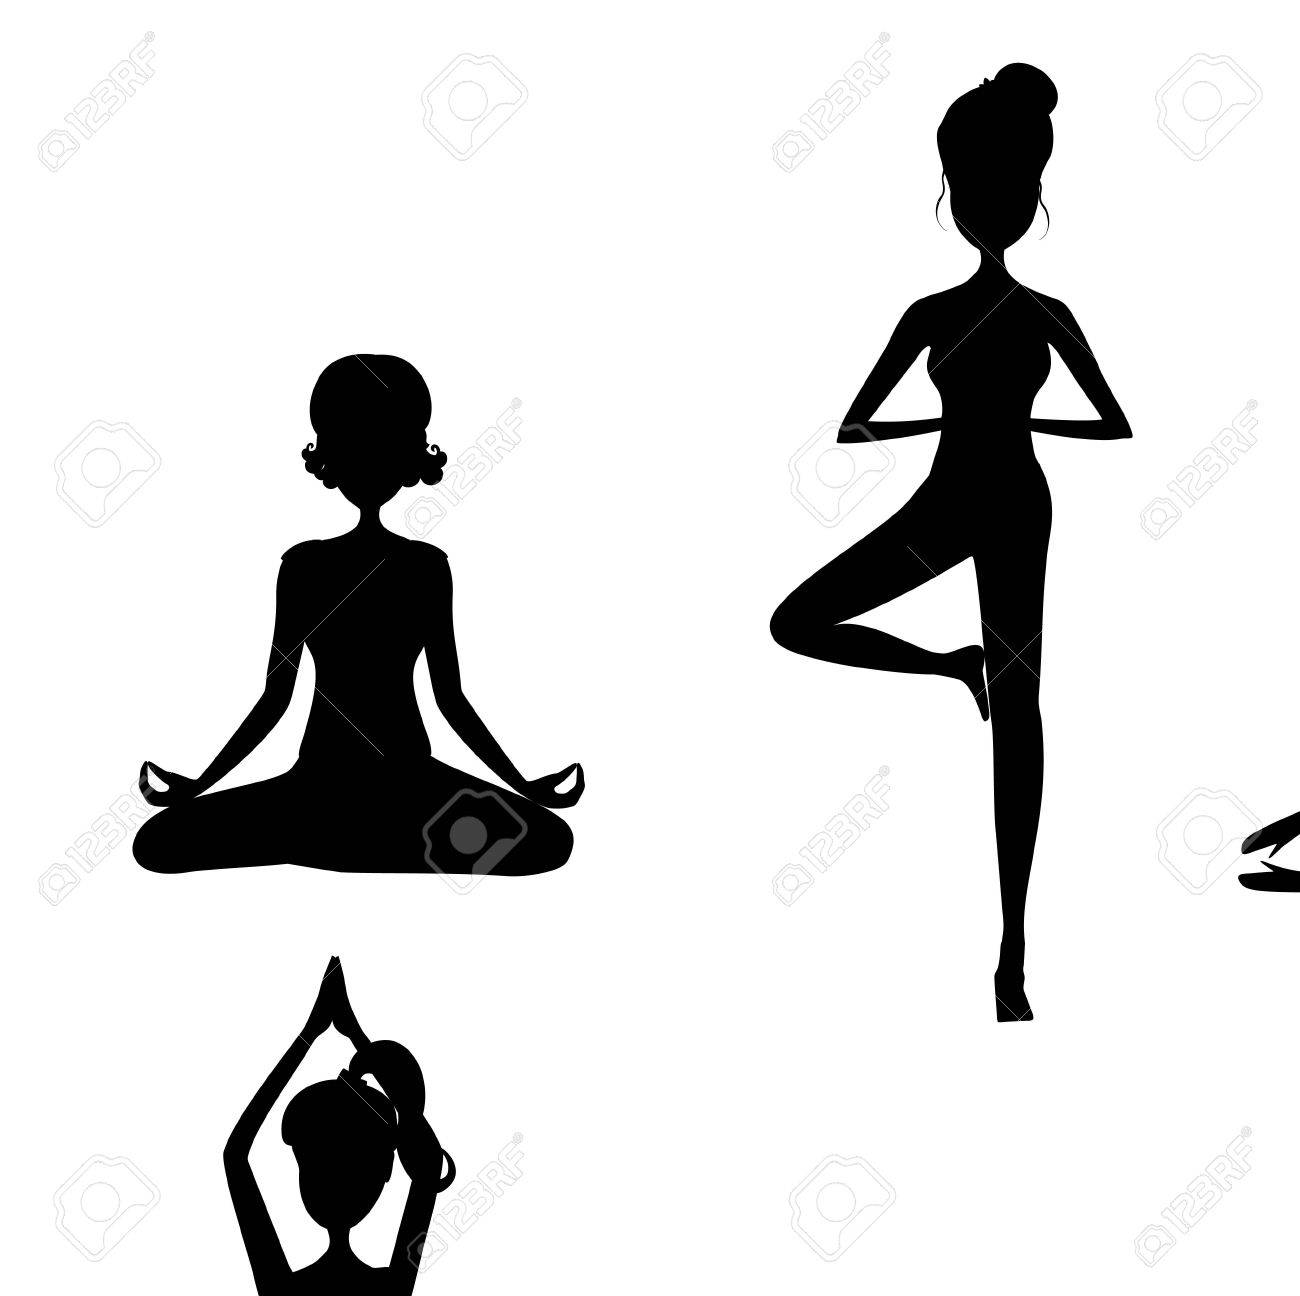 Black Silhouette Of Yoga Pose Cartoon Girl In Yoga Postures Black Royalty Free Cliparts Vectors And Stock Illustration Image 63576836